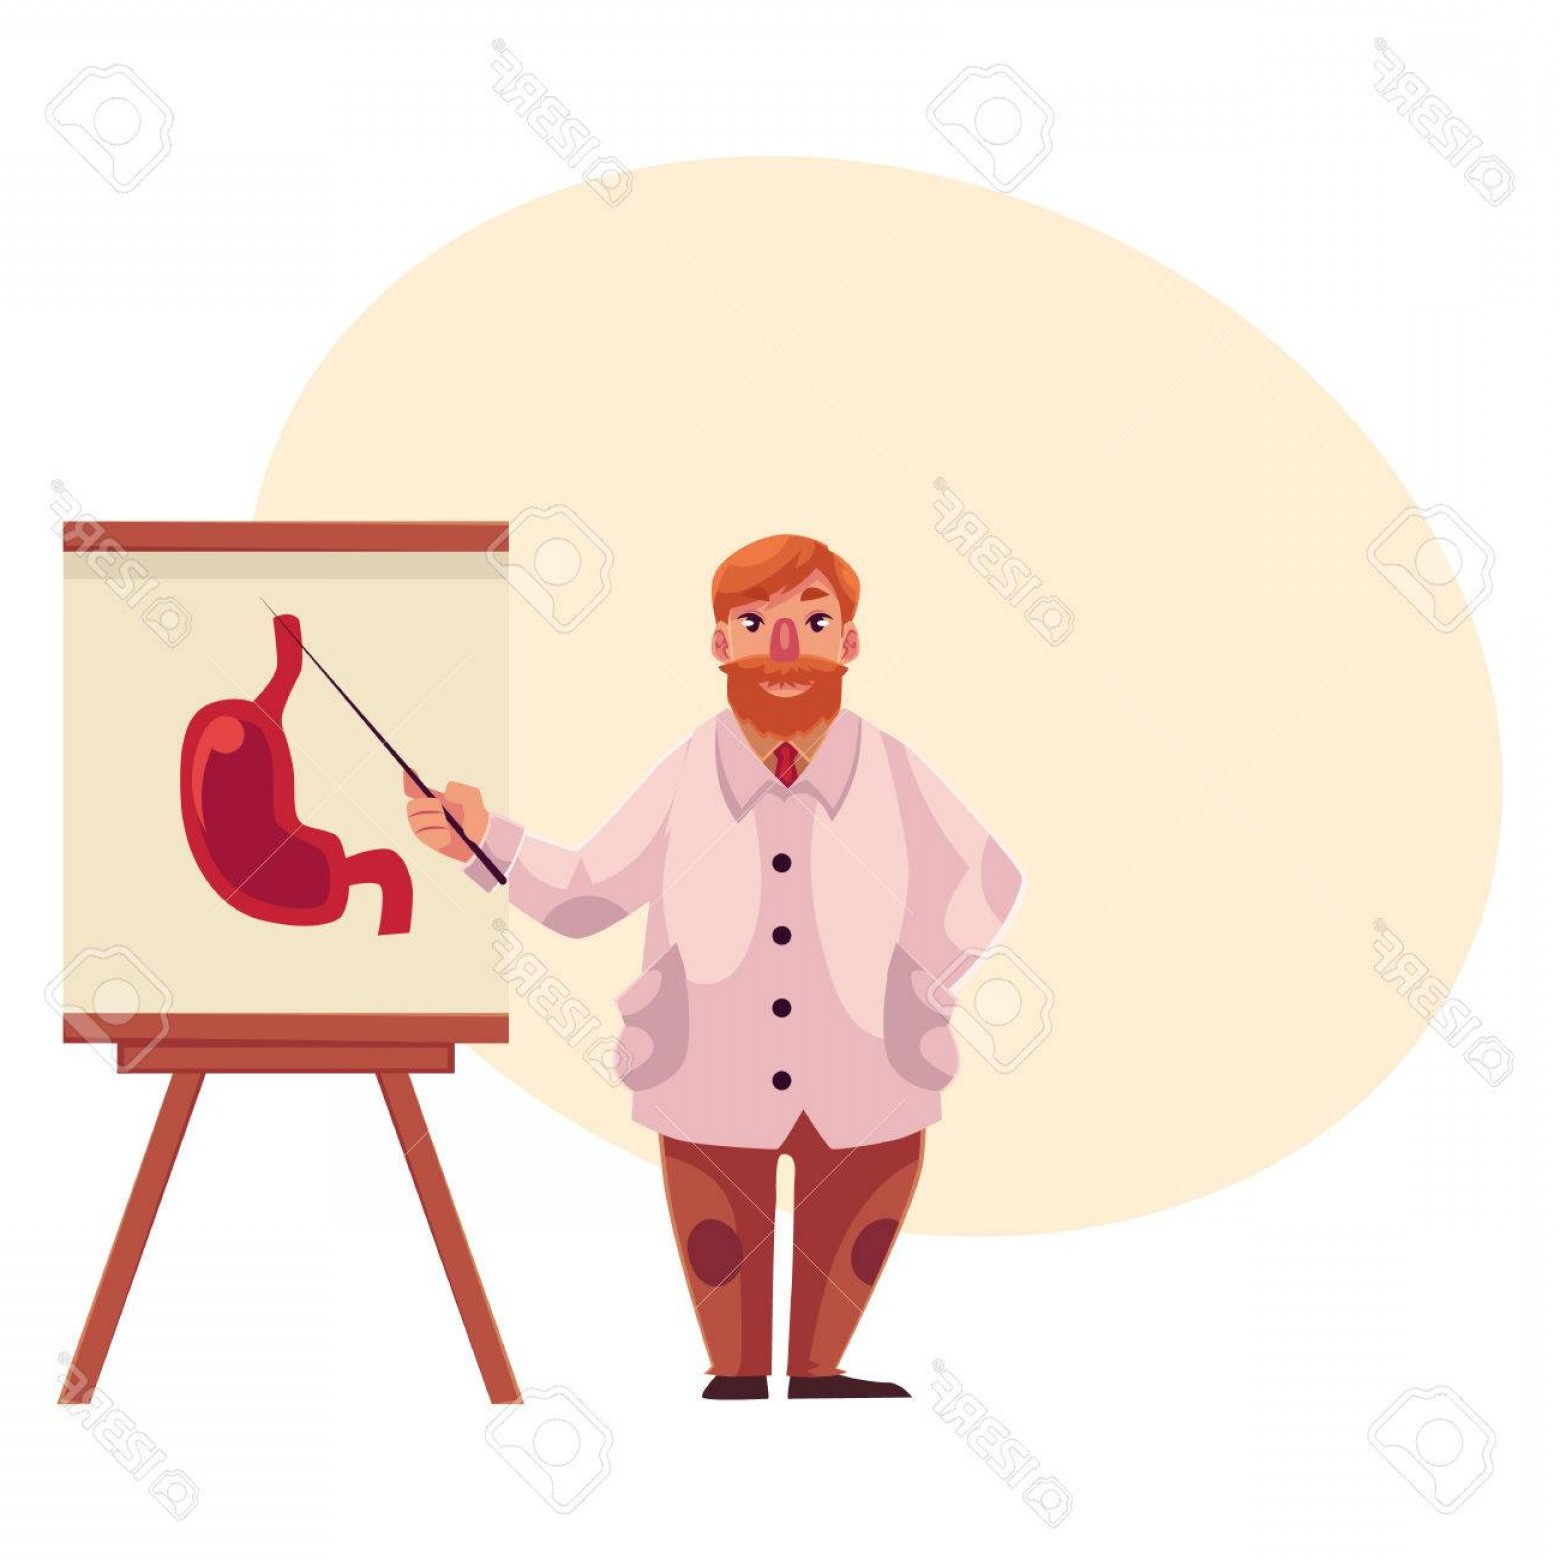 Lab Coat Cartoon Vector: Photostock Vector Male Gastroenterologist In Lab Coat Pointing To Stomach On Poster Cartoon Vector On Background With